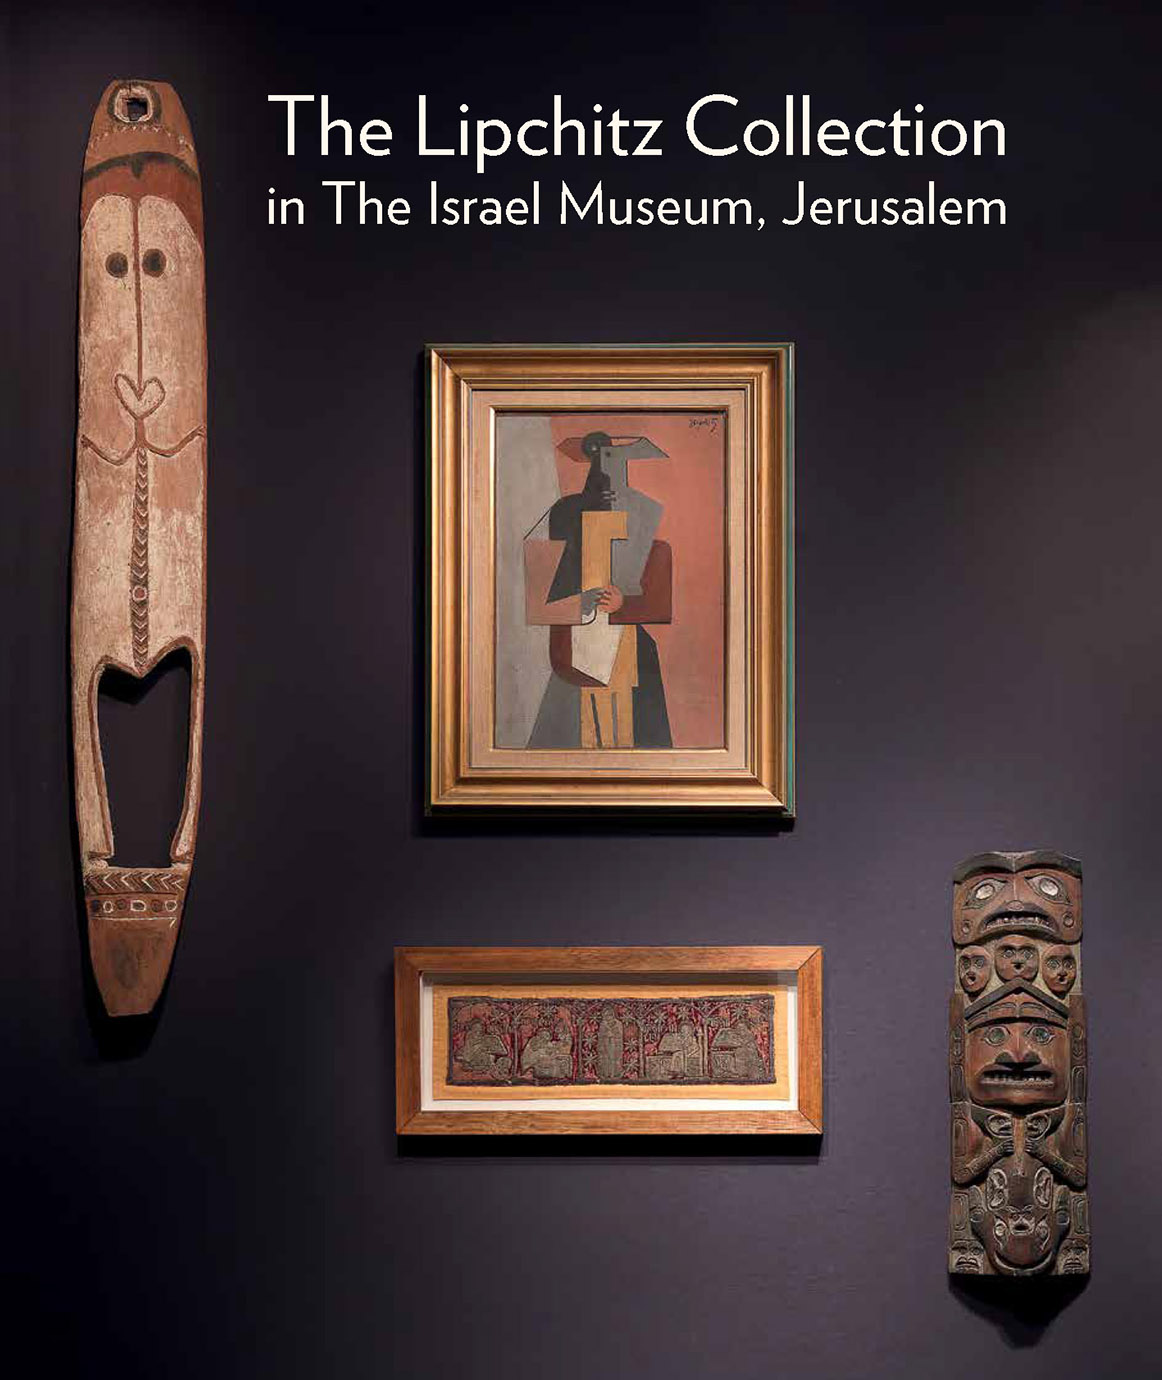 The Lipchitz Collection In The Israel Museum, Jerusalem